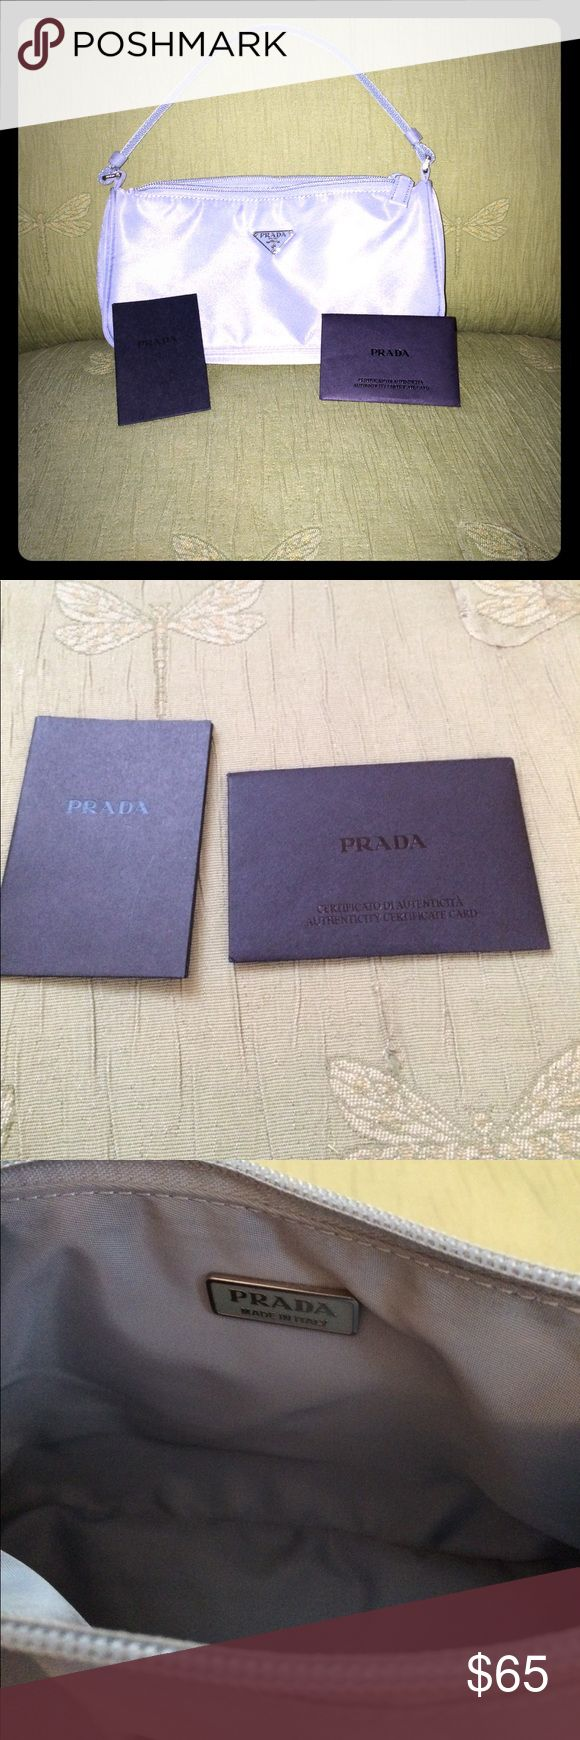 Prada Tessuto Sport Great starter Prada purse for those who like a small lightweight bag. The color is listed as pervinca which is a blue/gray. Comes with certificate of authenticity card. Prada Bags